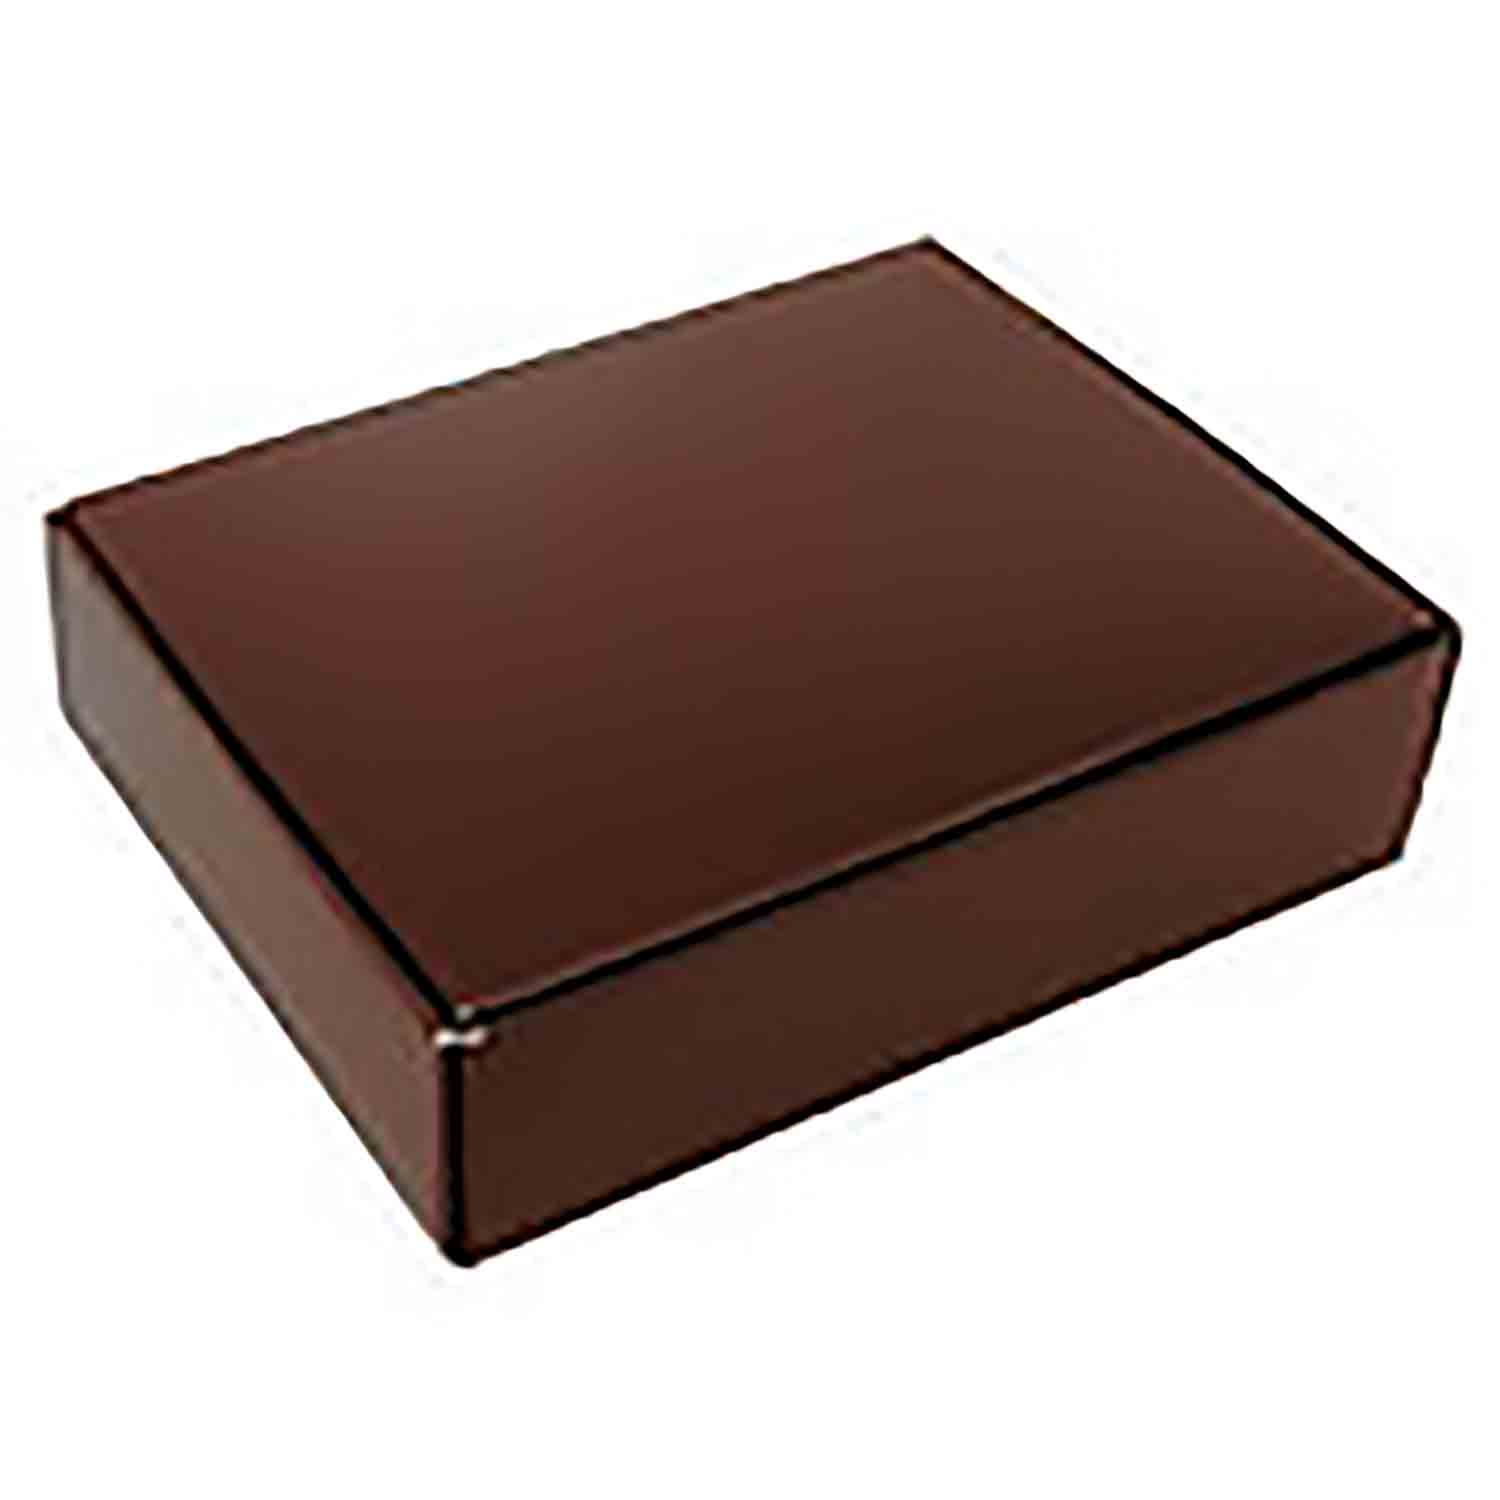 3 oz. Brown Candy Box